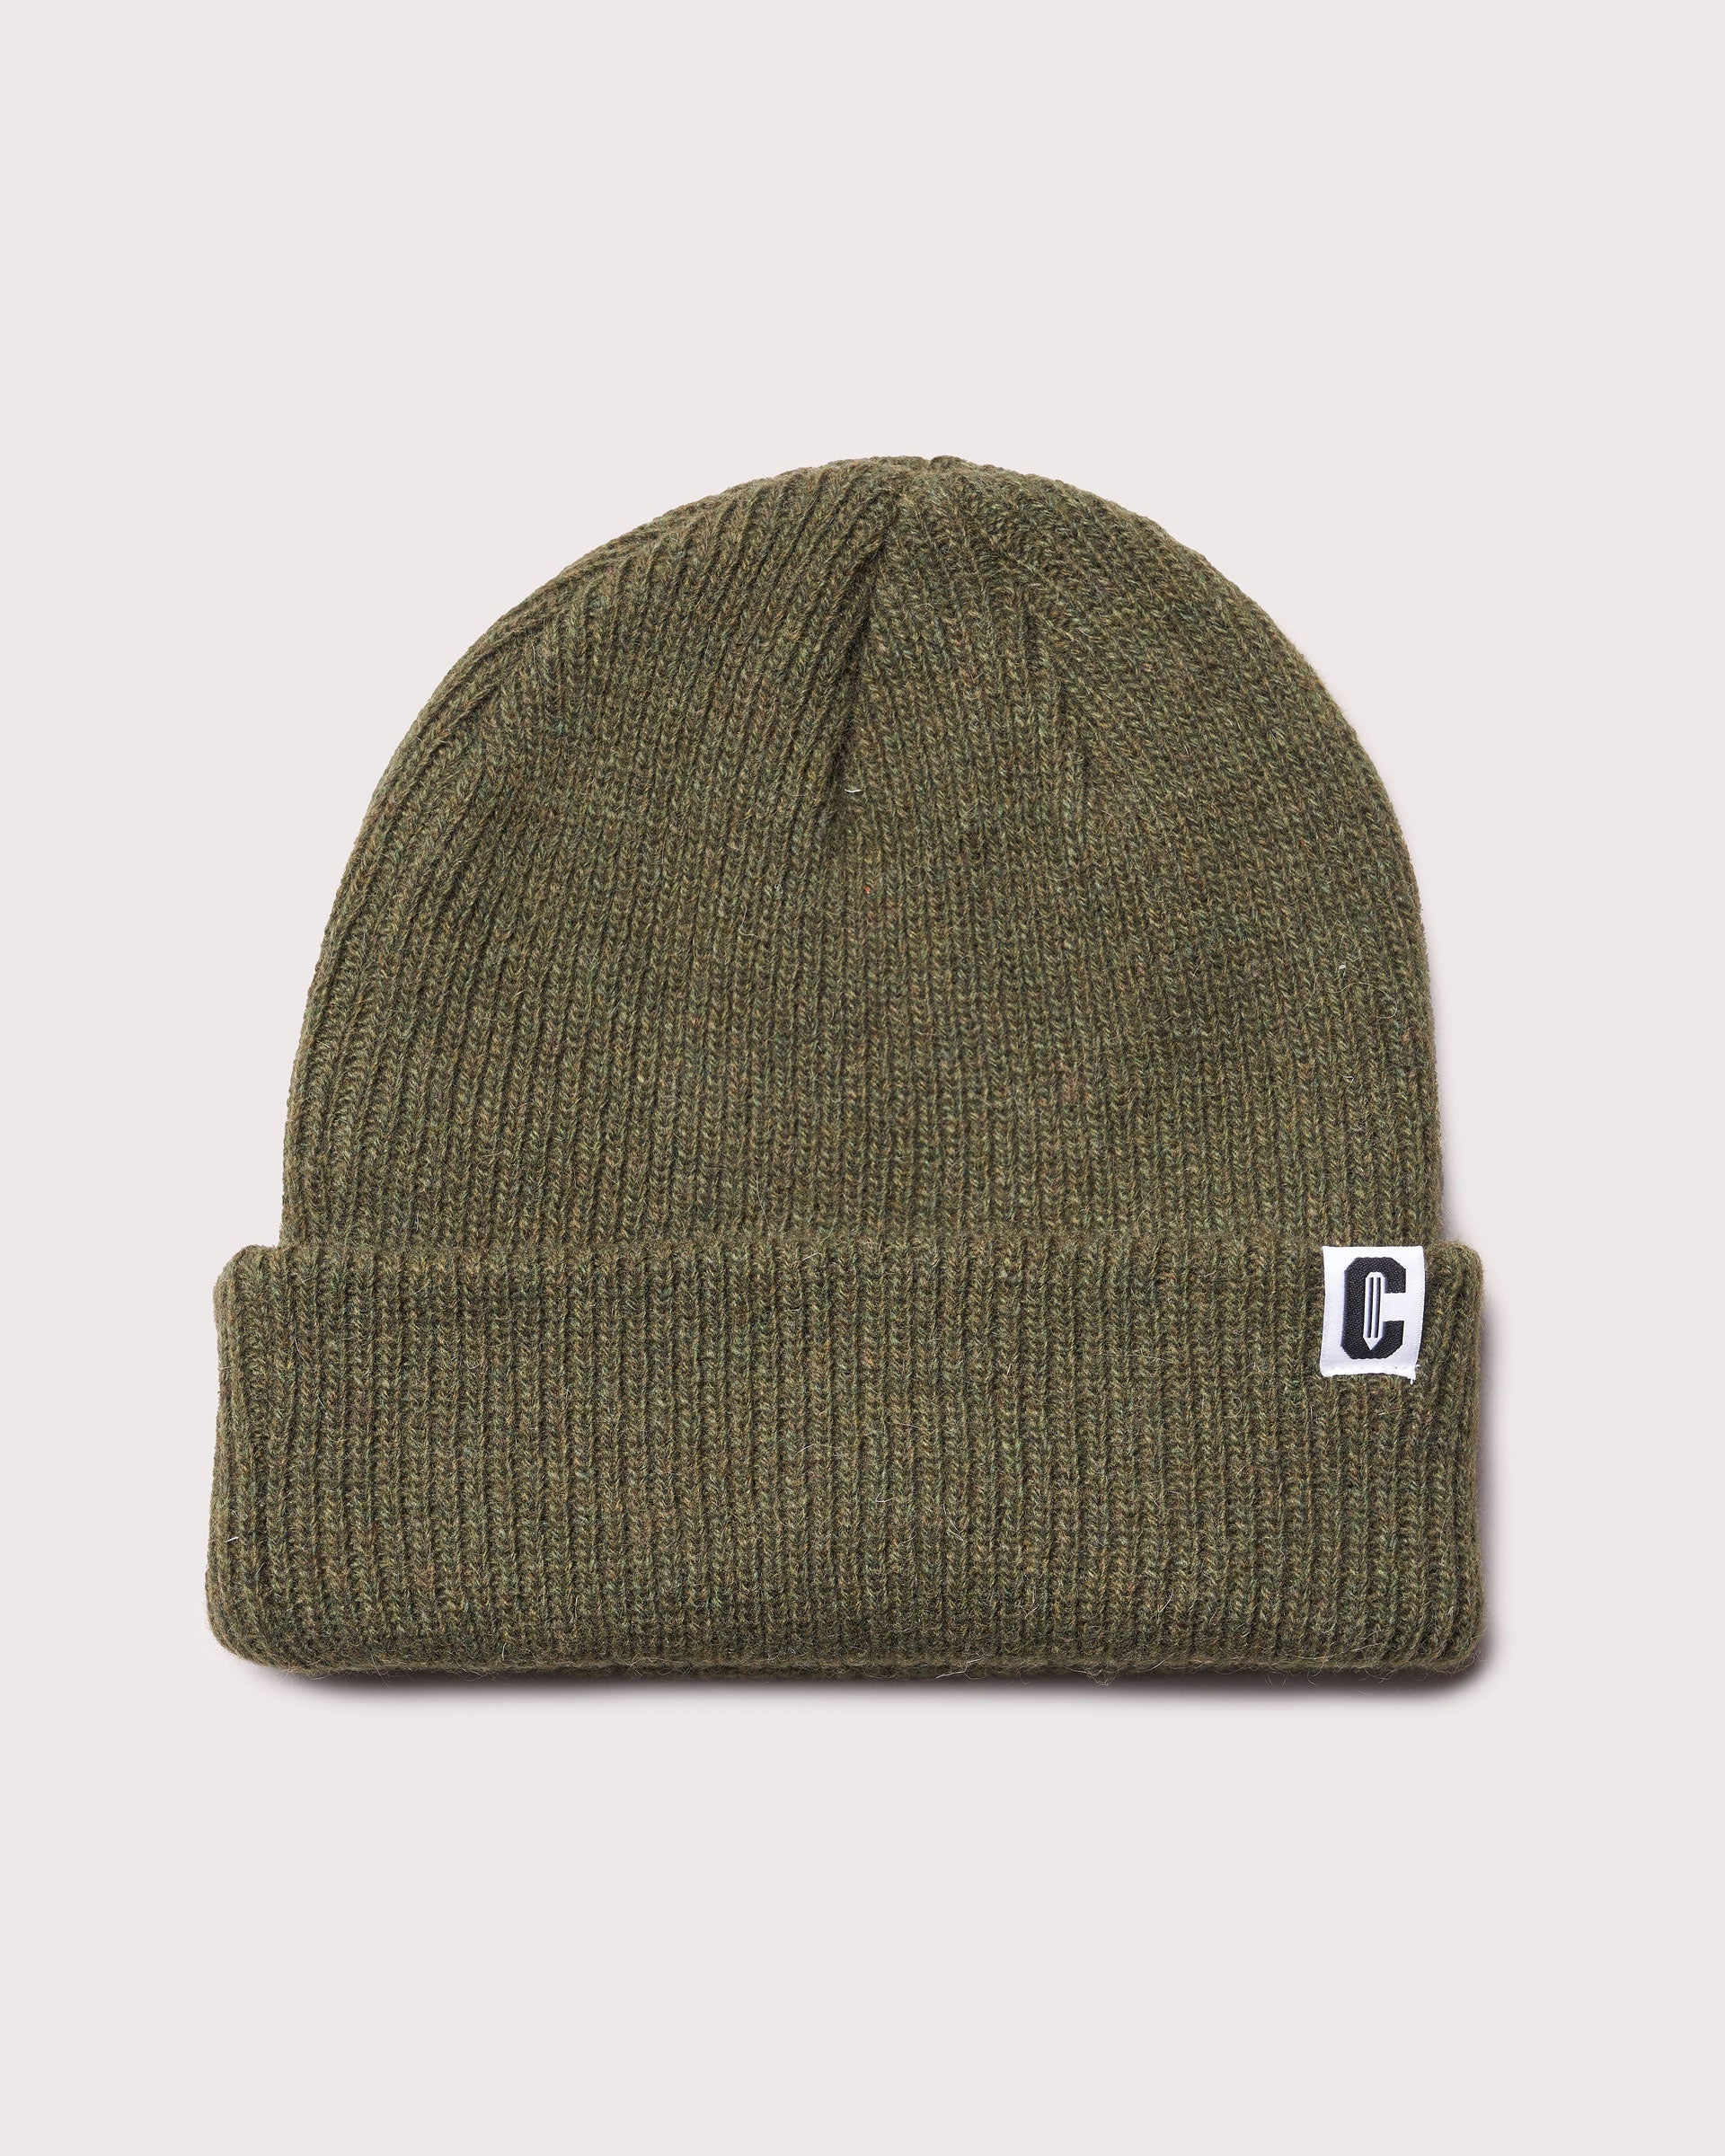 An olive green merino wool cuffed beanie with a woven label featuring the Coursework C logo.